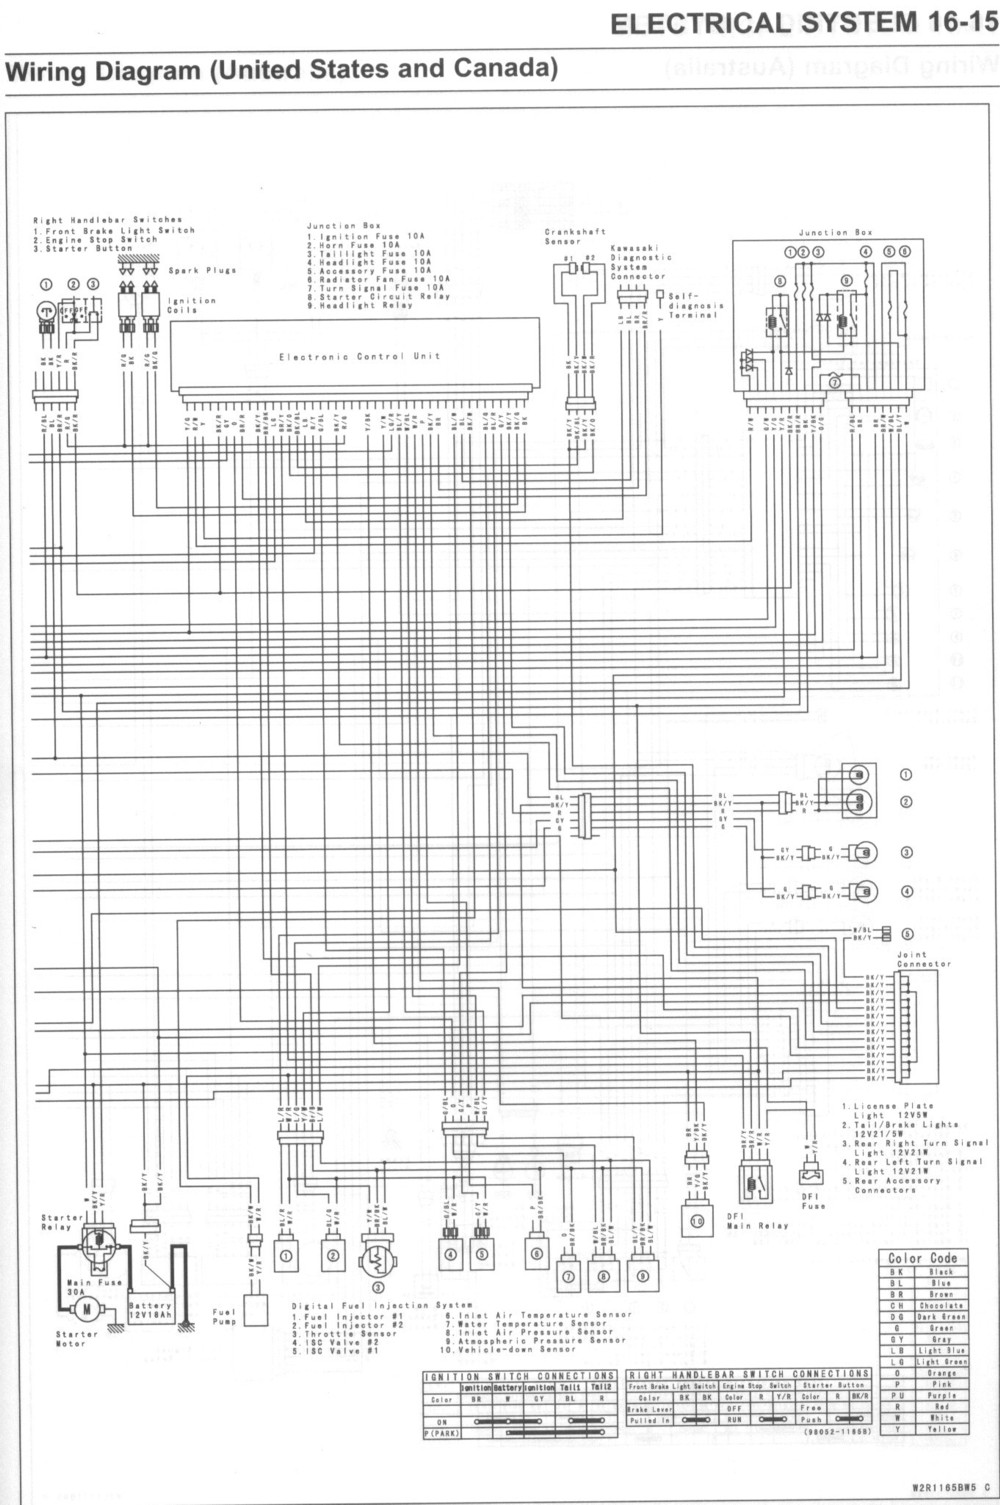 1995 kawasaki vulcan wiring diagram 1995 kawasaki vulcan 1500 wiring diagram vulcan 1500 wiring diagram - all kind of wiring diagrams #8